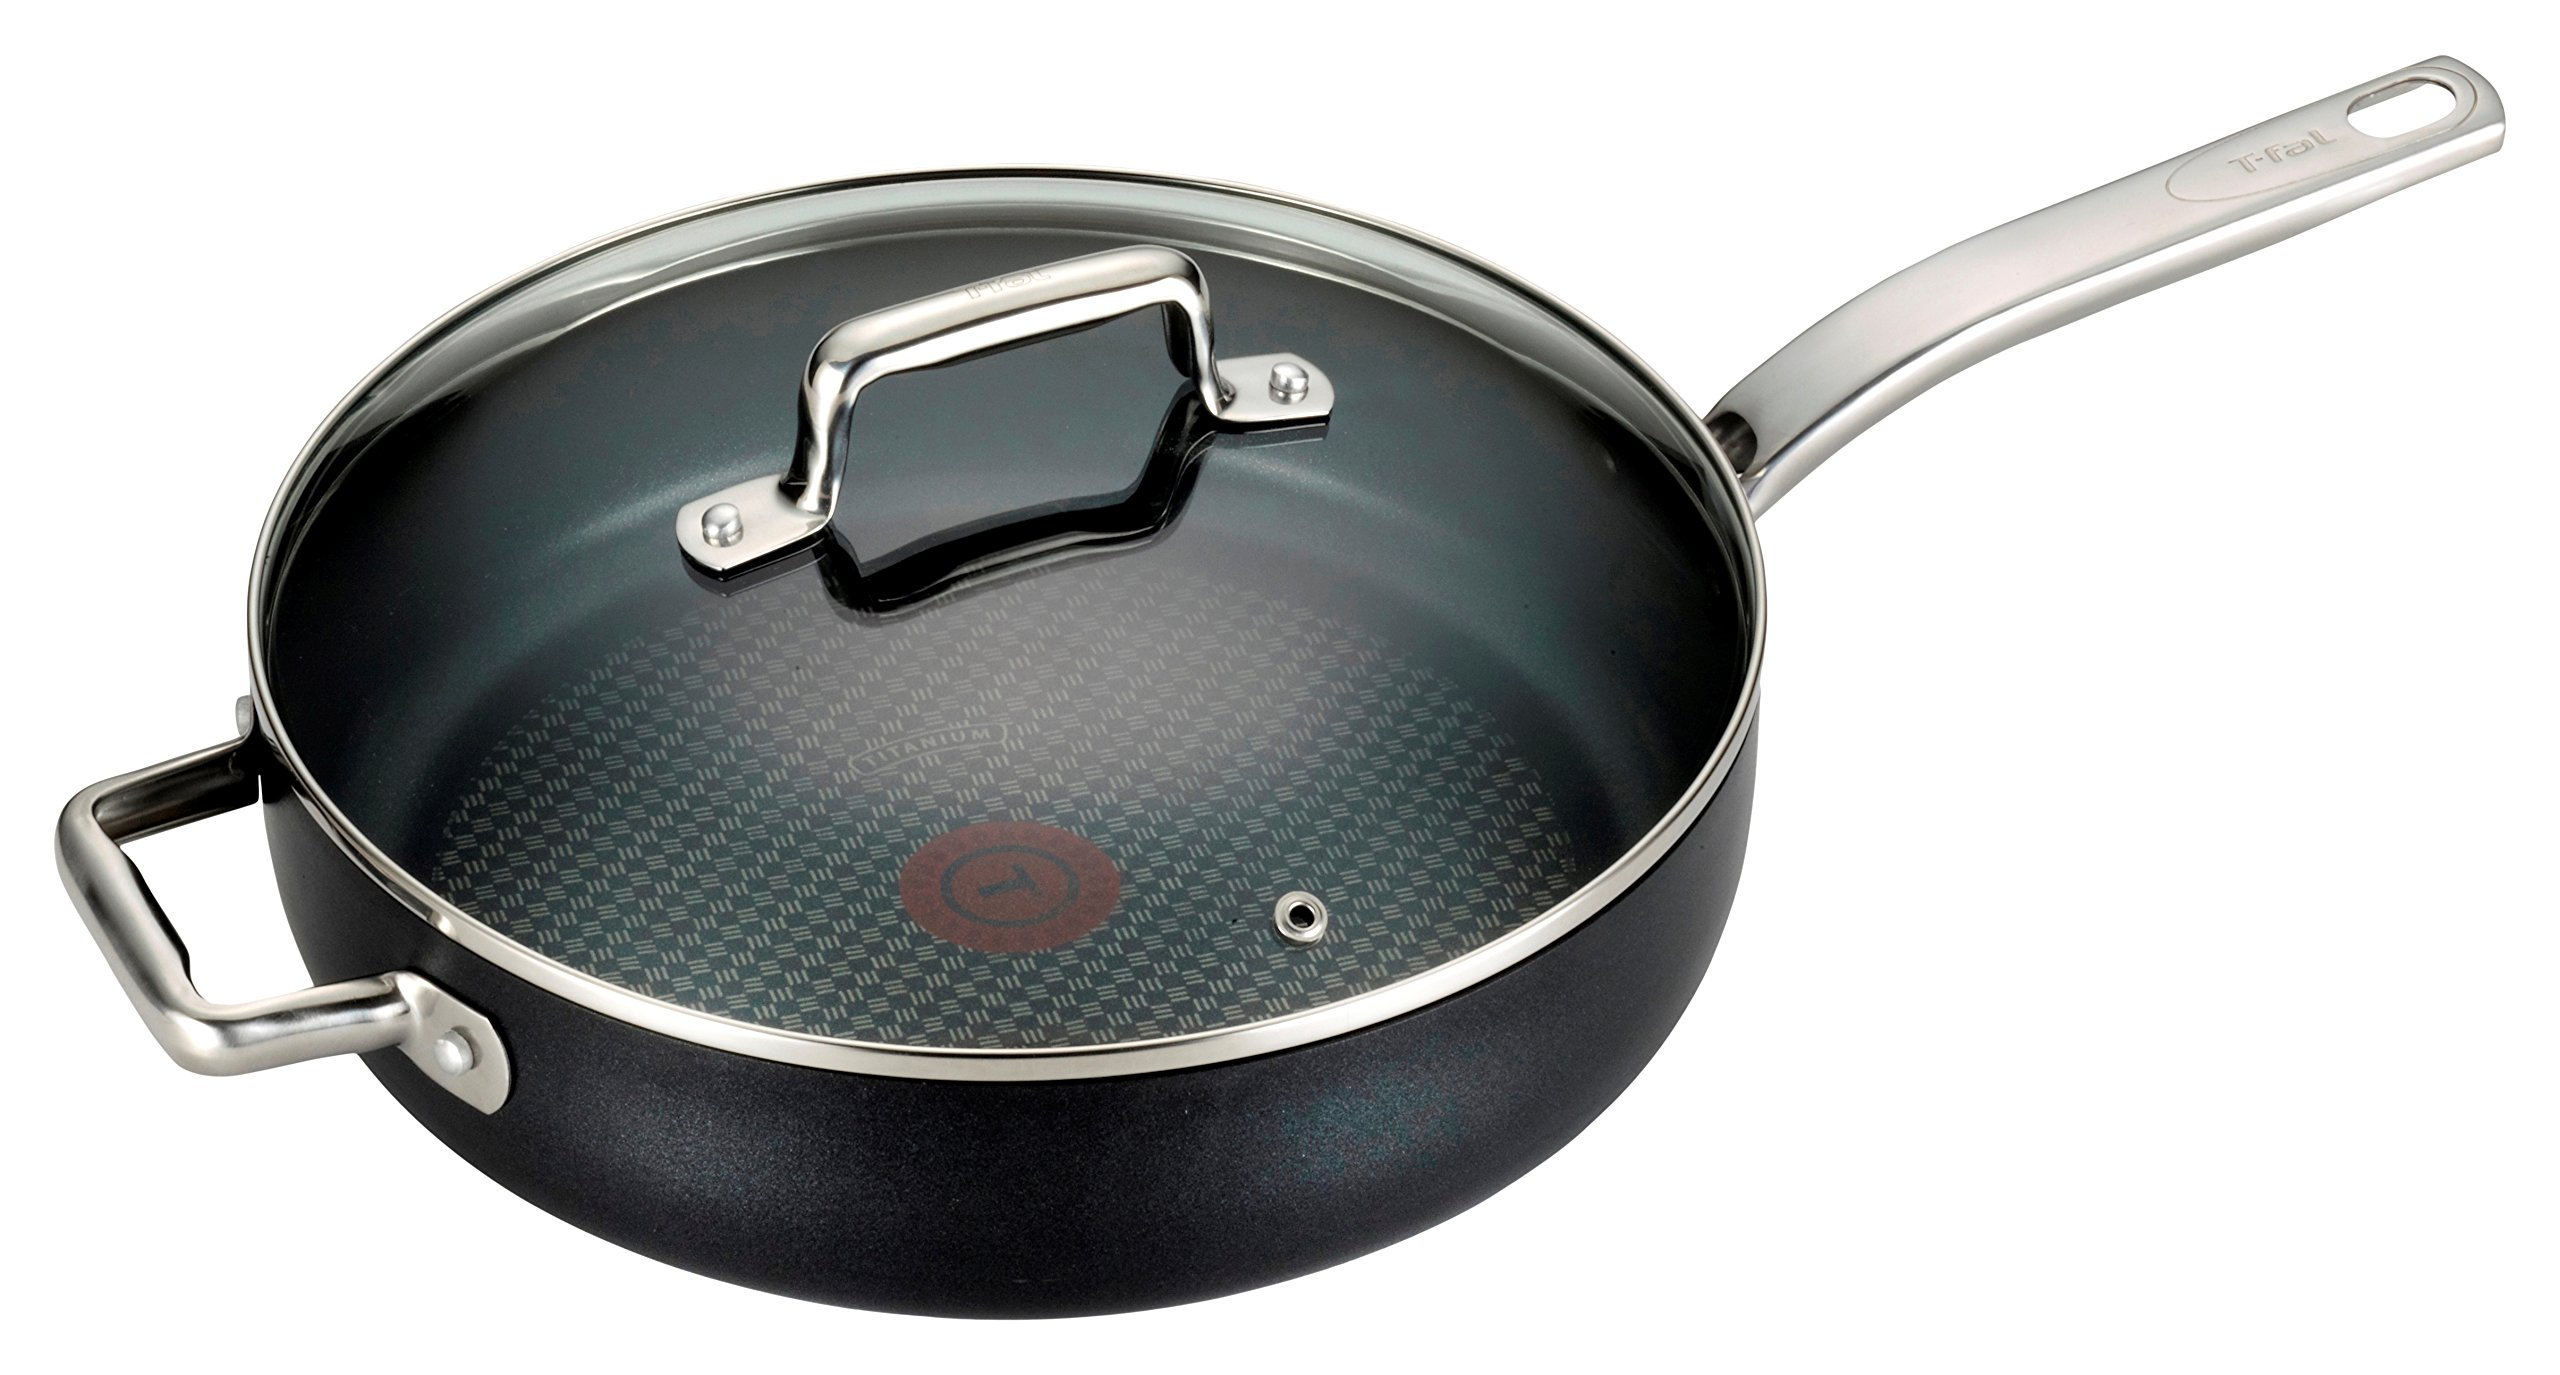 T-fal C51782 ProGrade Titanium Nonstick Thermo-Spot Dishwasher Safe PFOA Free with Induction Base Saute Pan Jumbo Cooker Cookware, 5-Quart, Black by T-fal